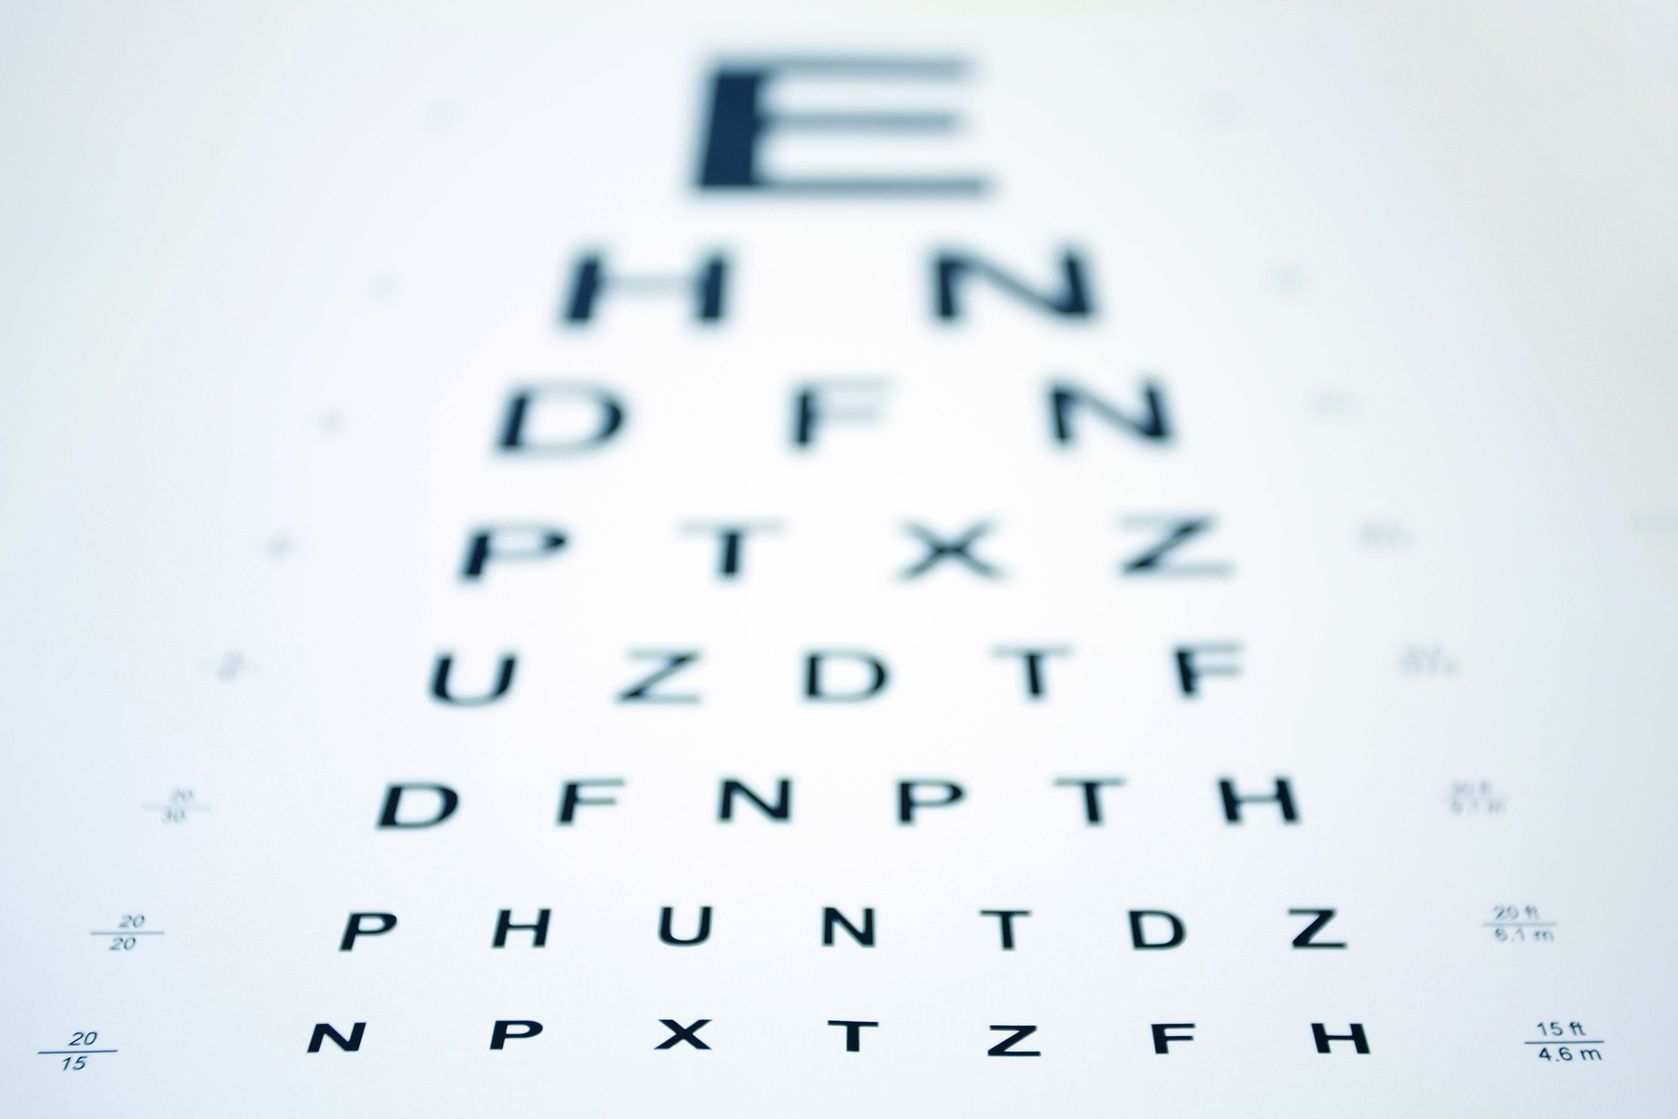 2705196 - snellen eye chart with shallow depth of field